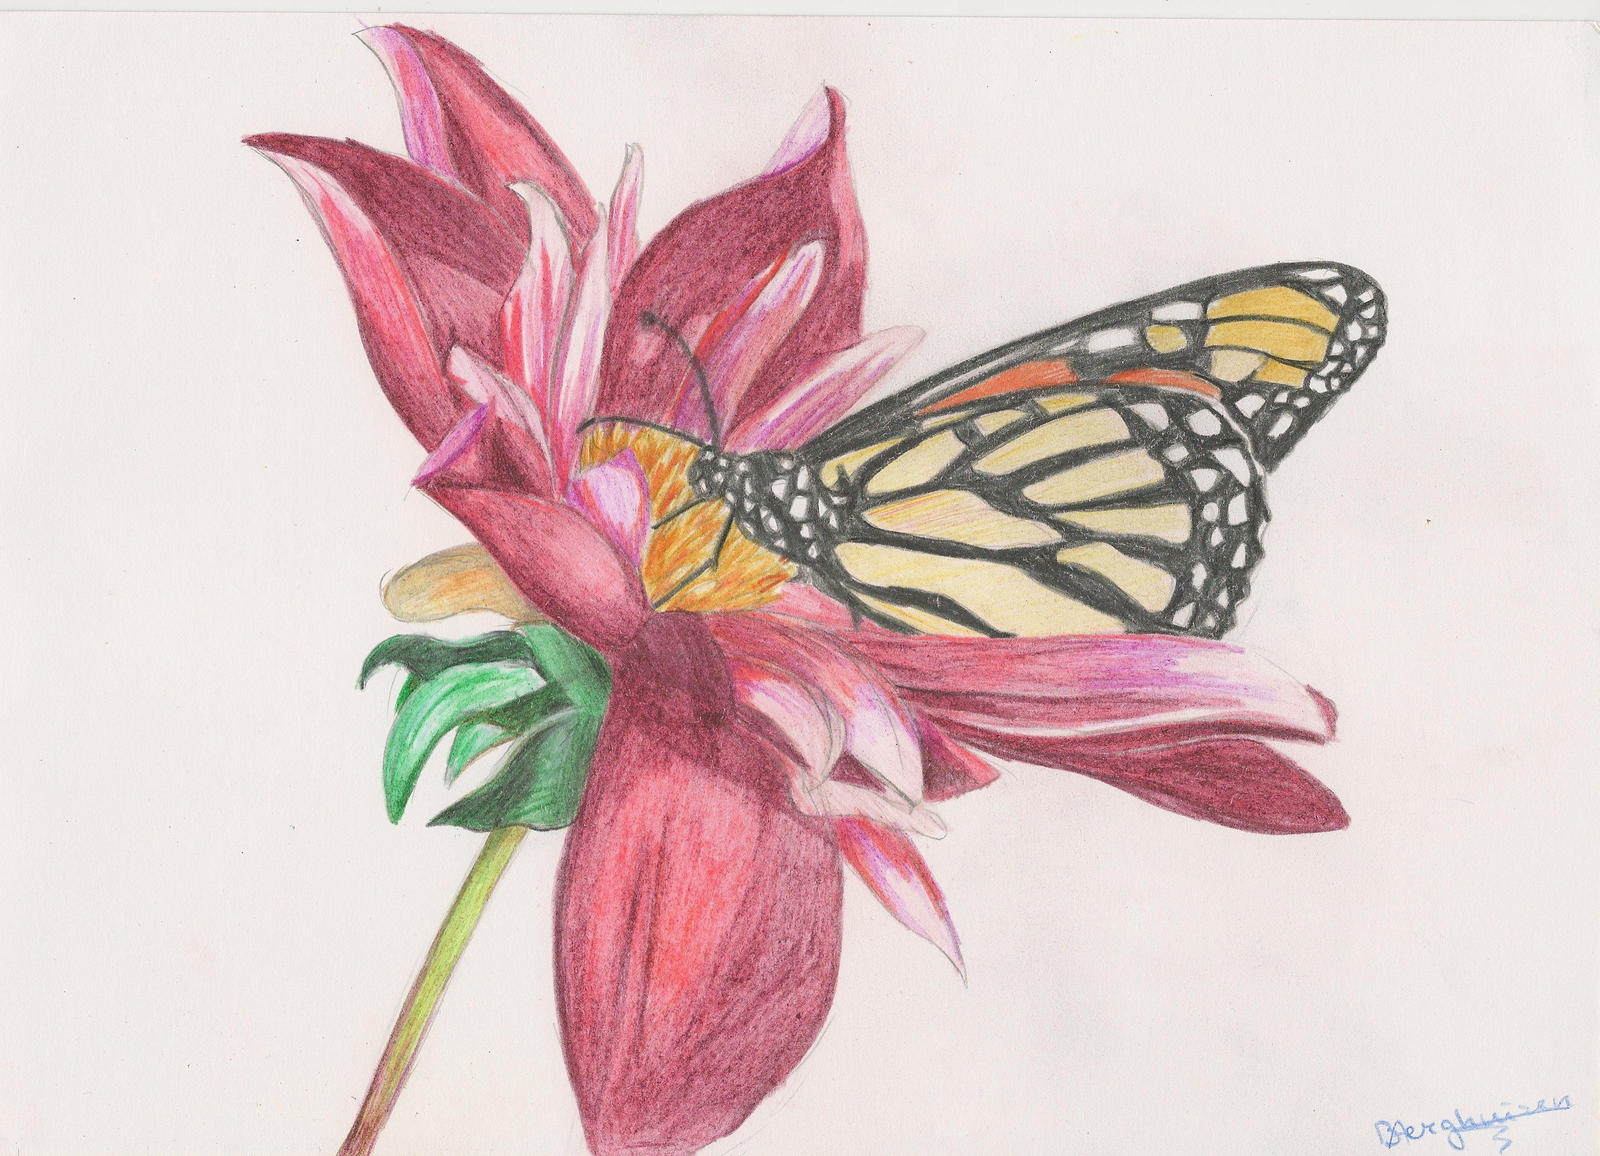 Butterfly on flower by Ashly-Me on DeviantArt